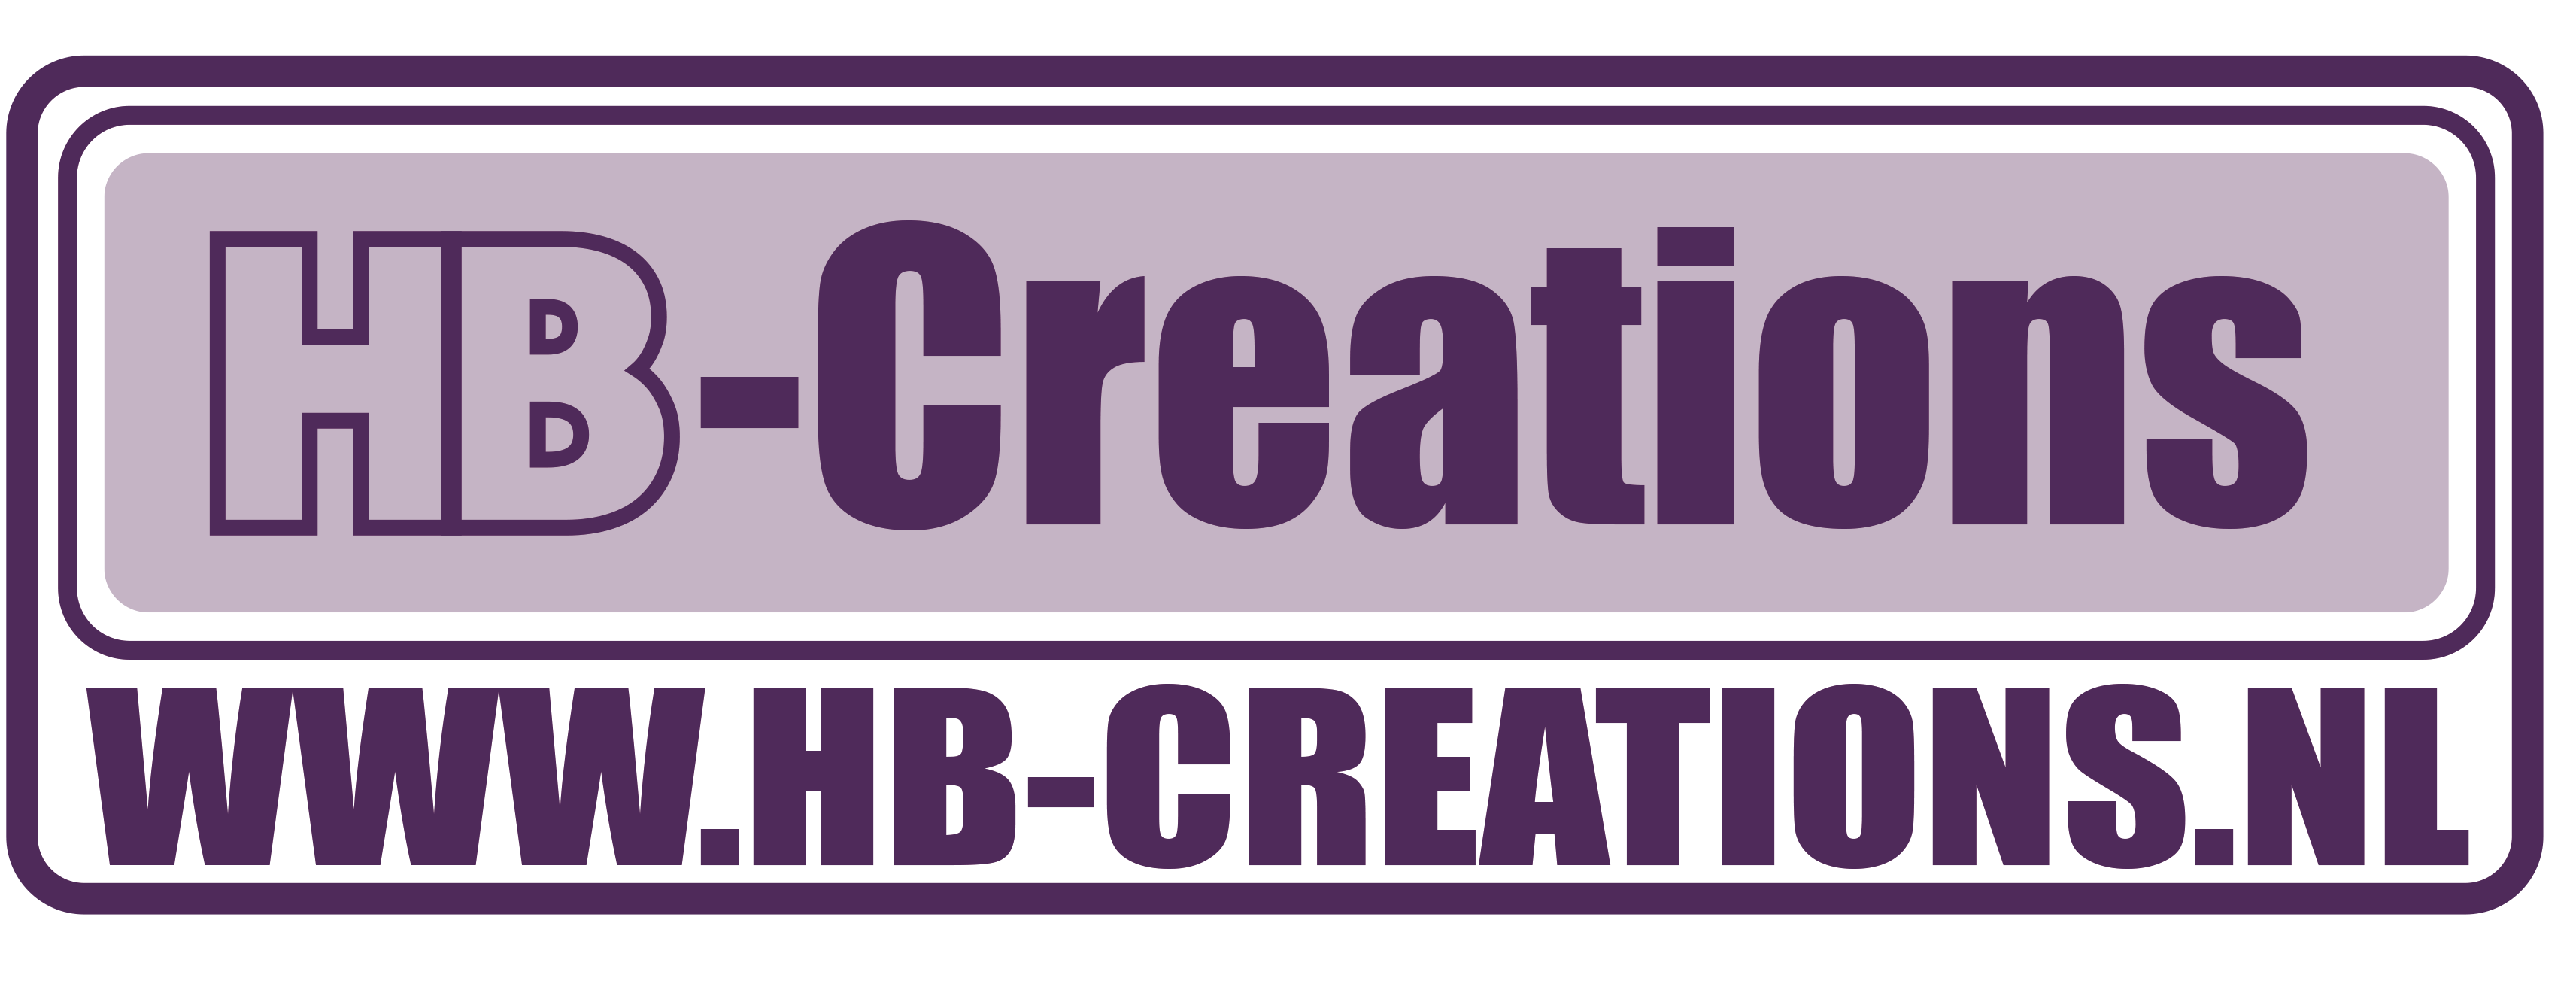 Webshop HB-Creations